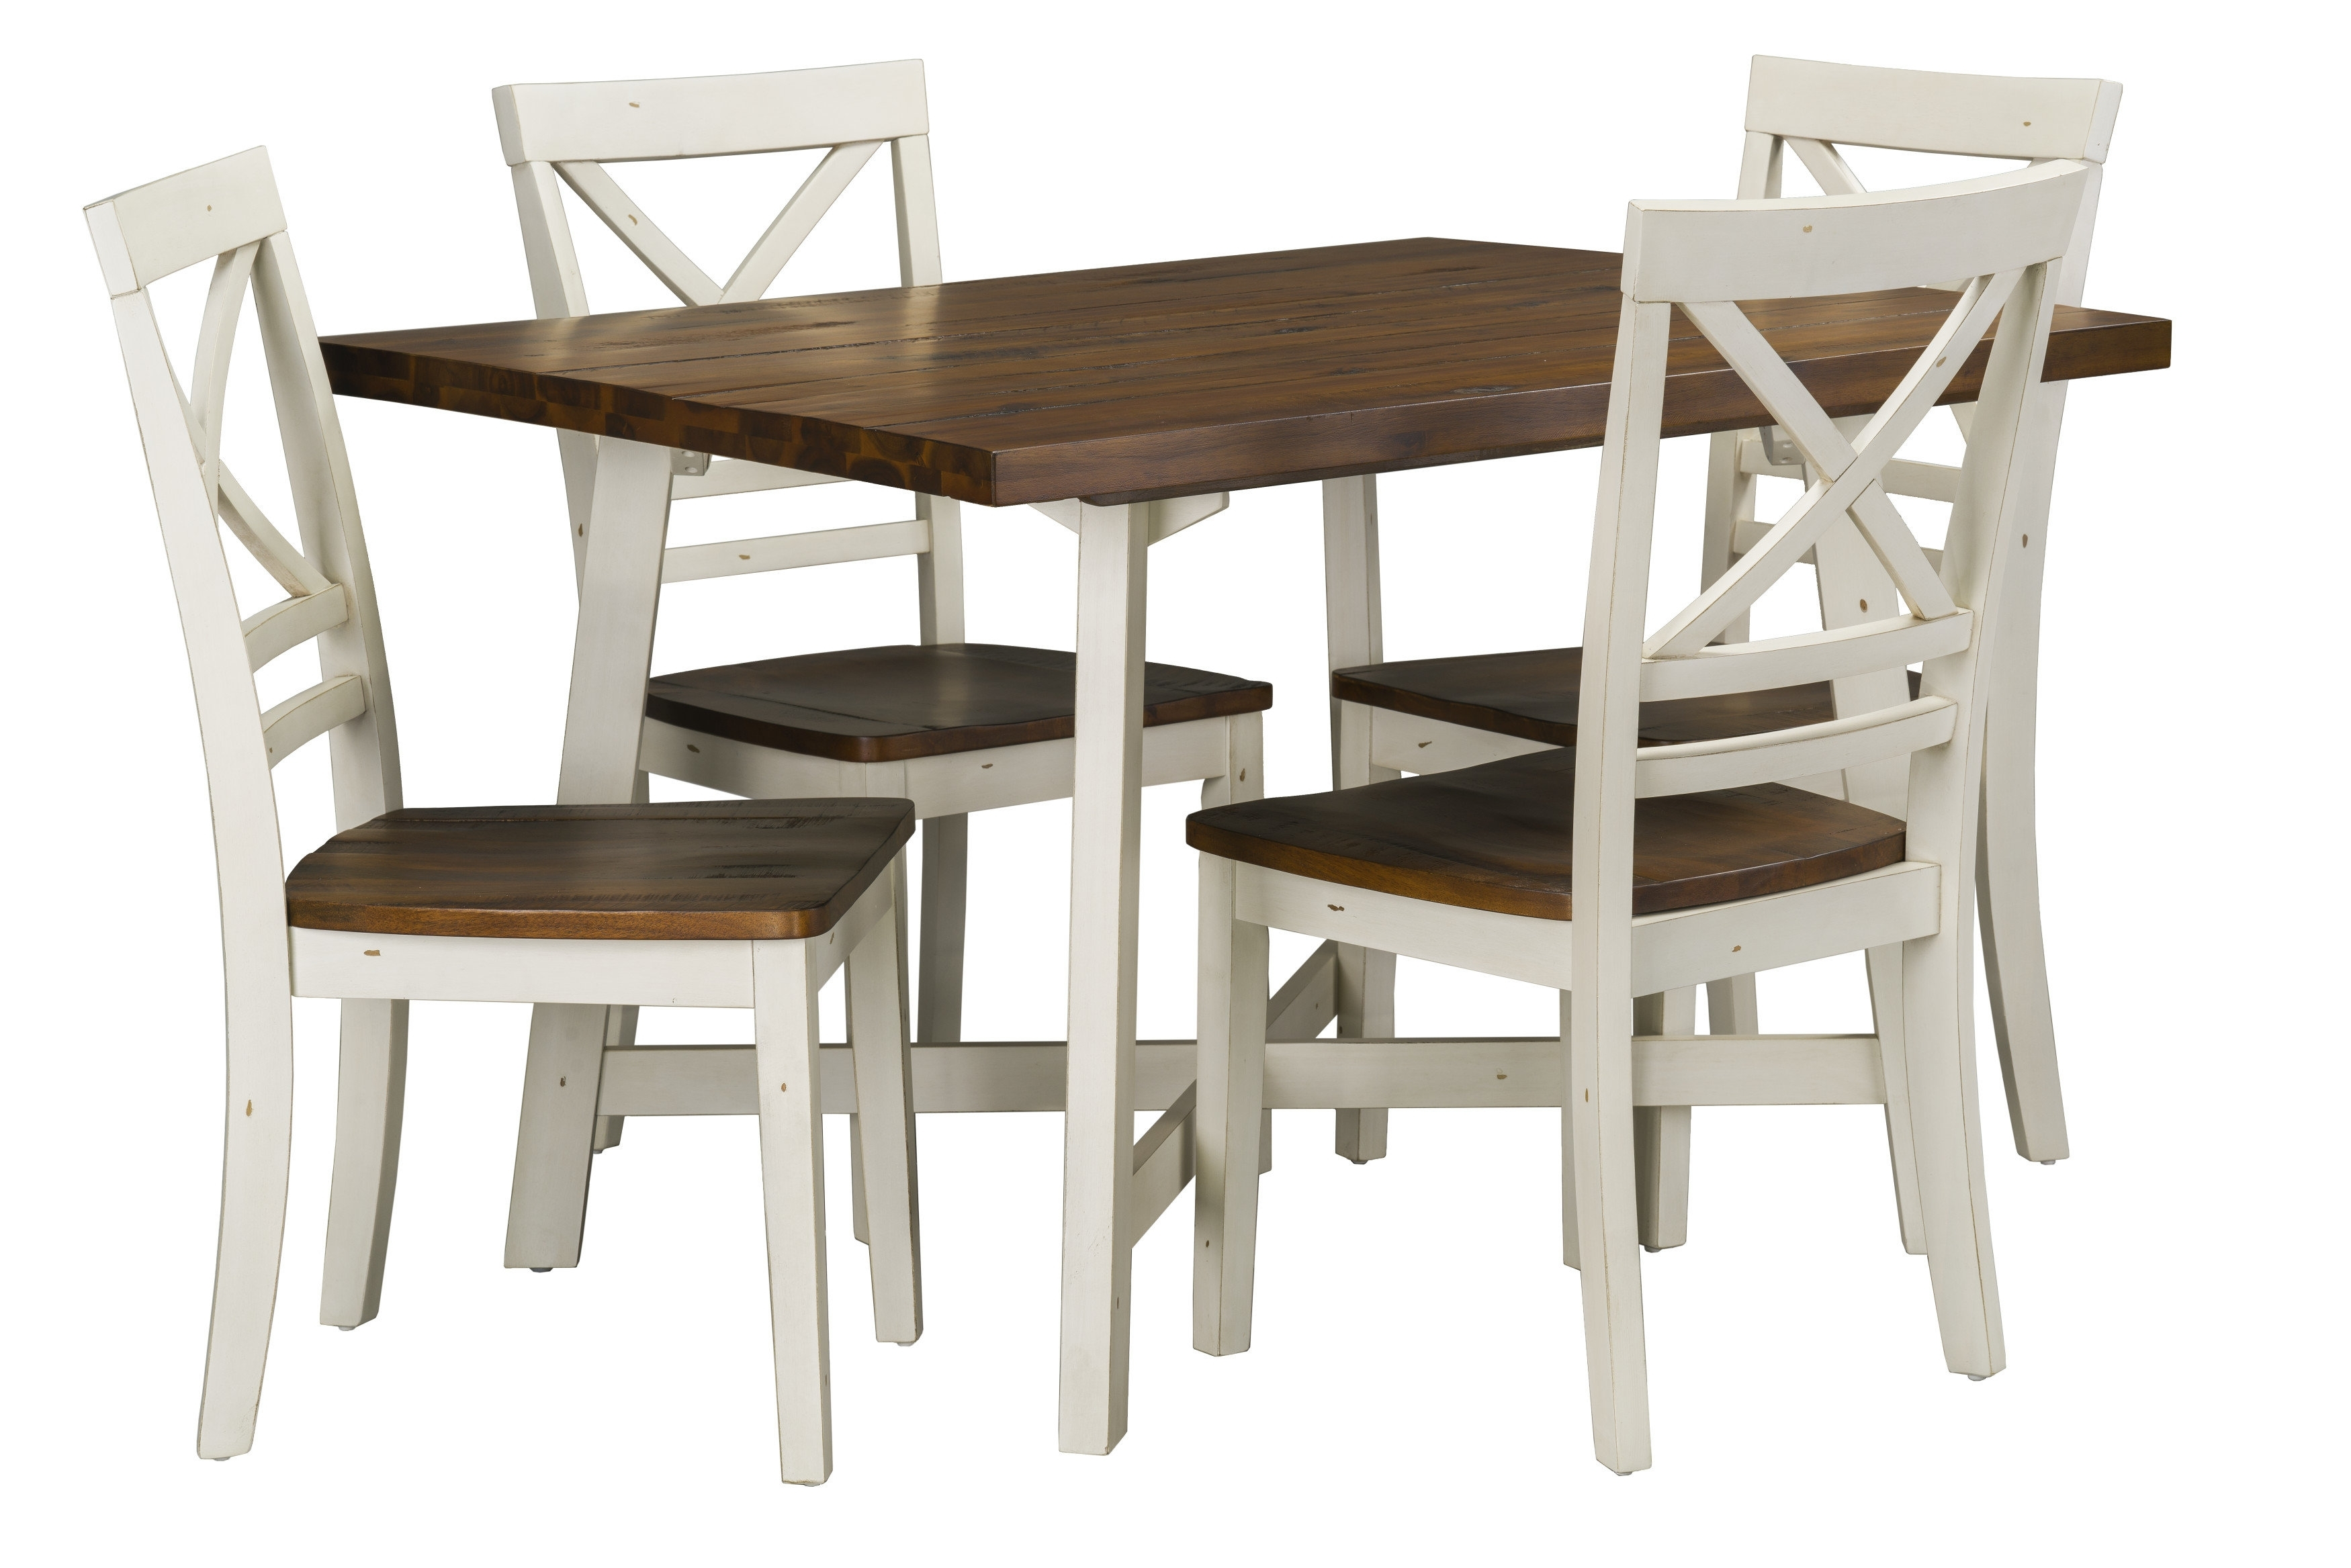 Dunnes 5 Piece Dining Set & Reviews | Joss & Main Pertaining To Recent Cora 7 Piece Dining Sets (Image 13 of 20)